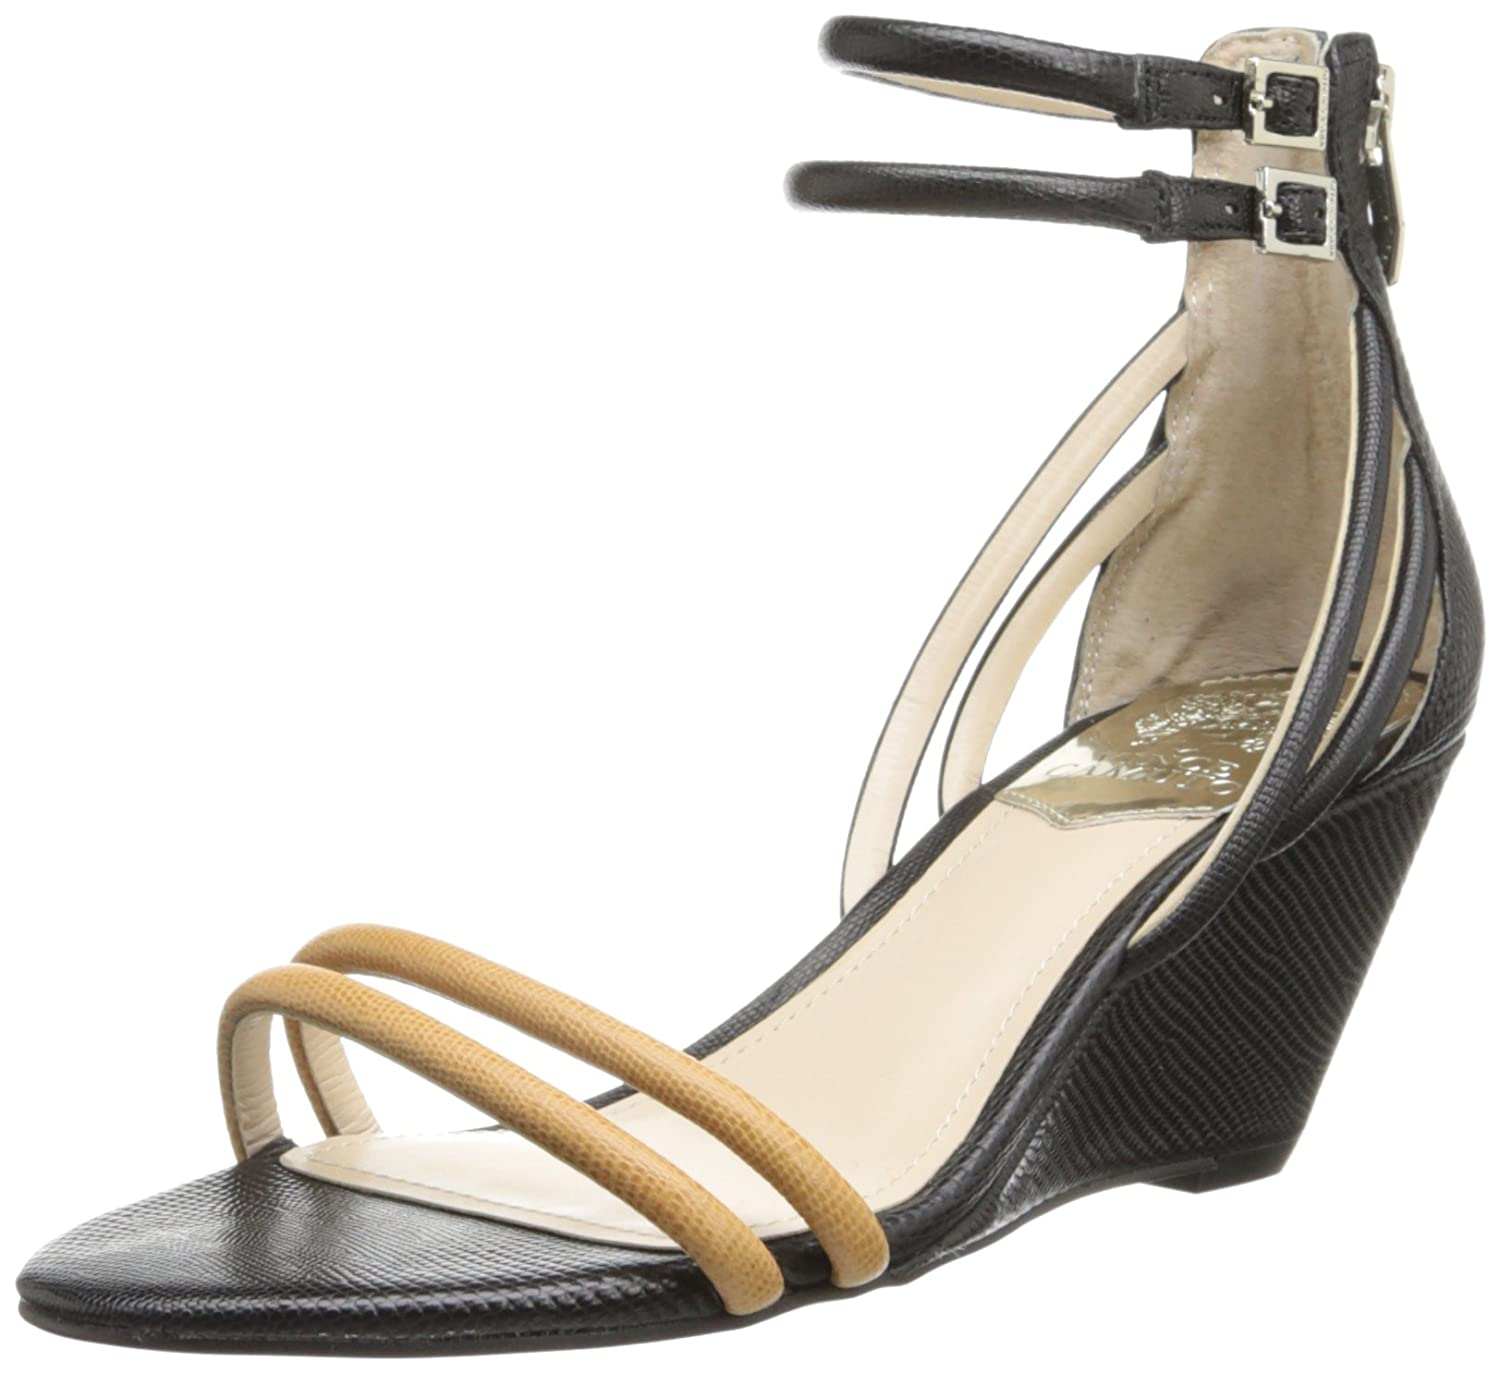 Vince Camuto Women's Wynter Wedge Sandal B00IJ4KWSO 8 B(M) US|Black/Outback